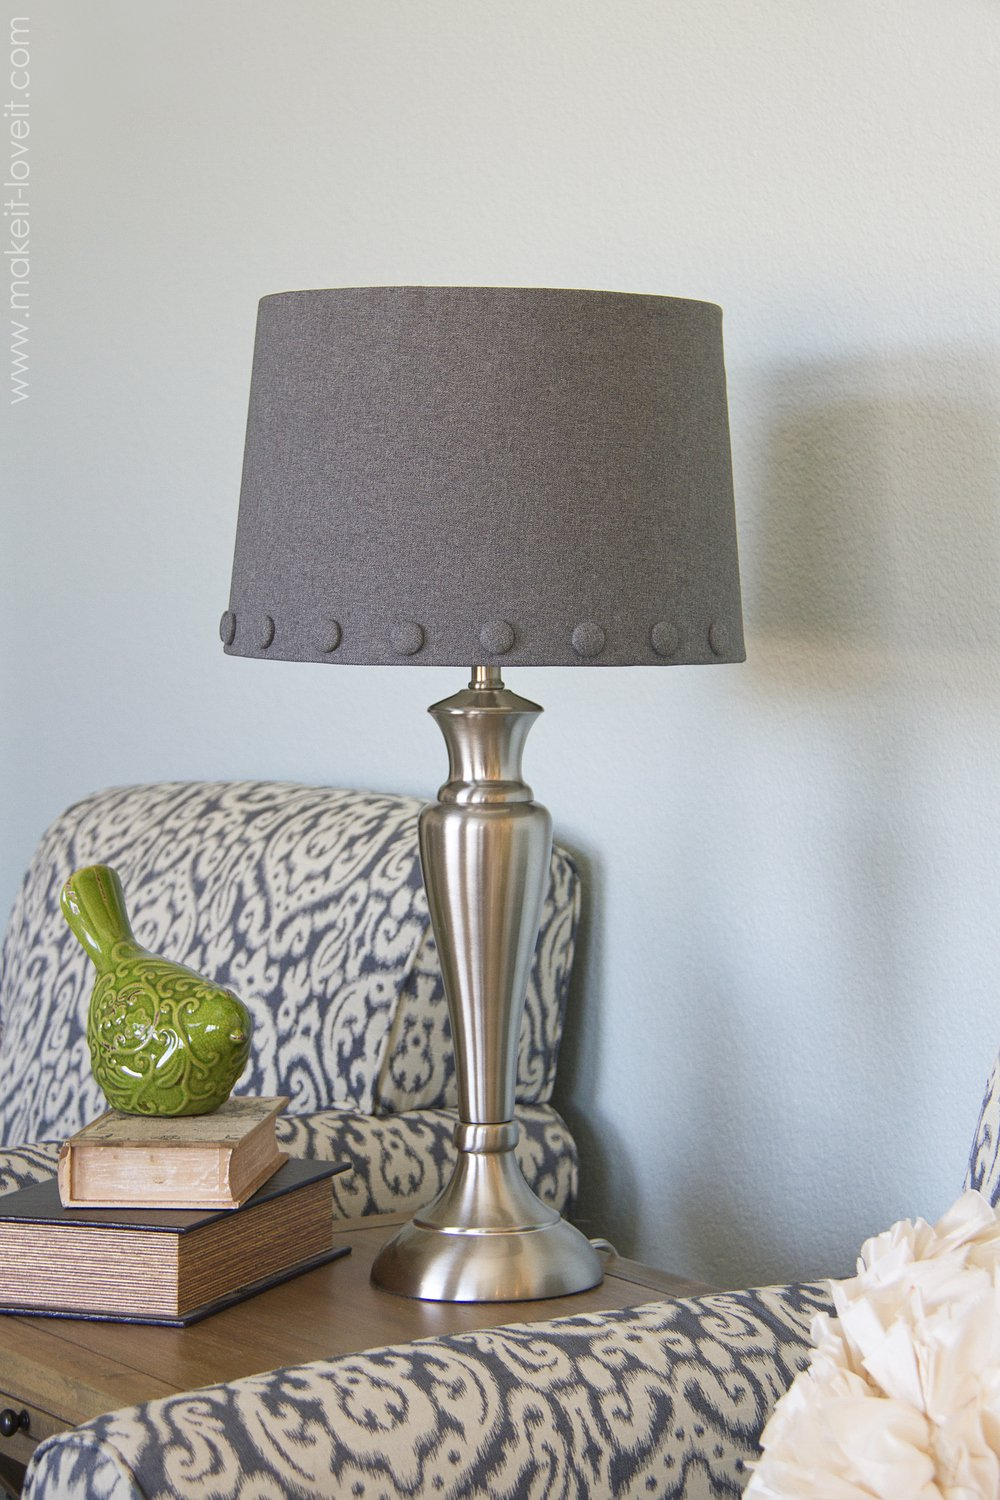 light fixture makeover 1